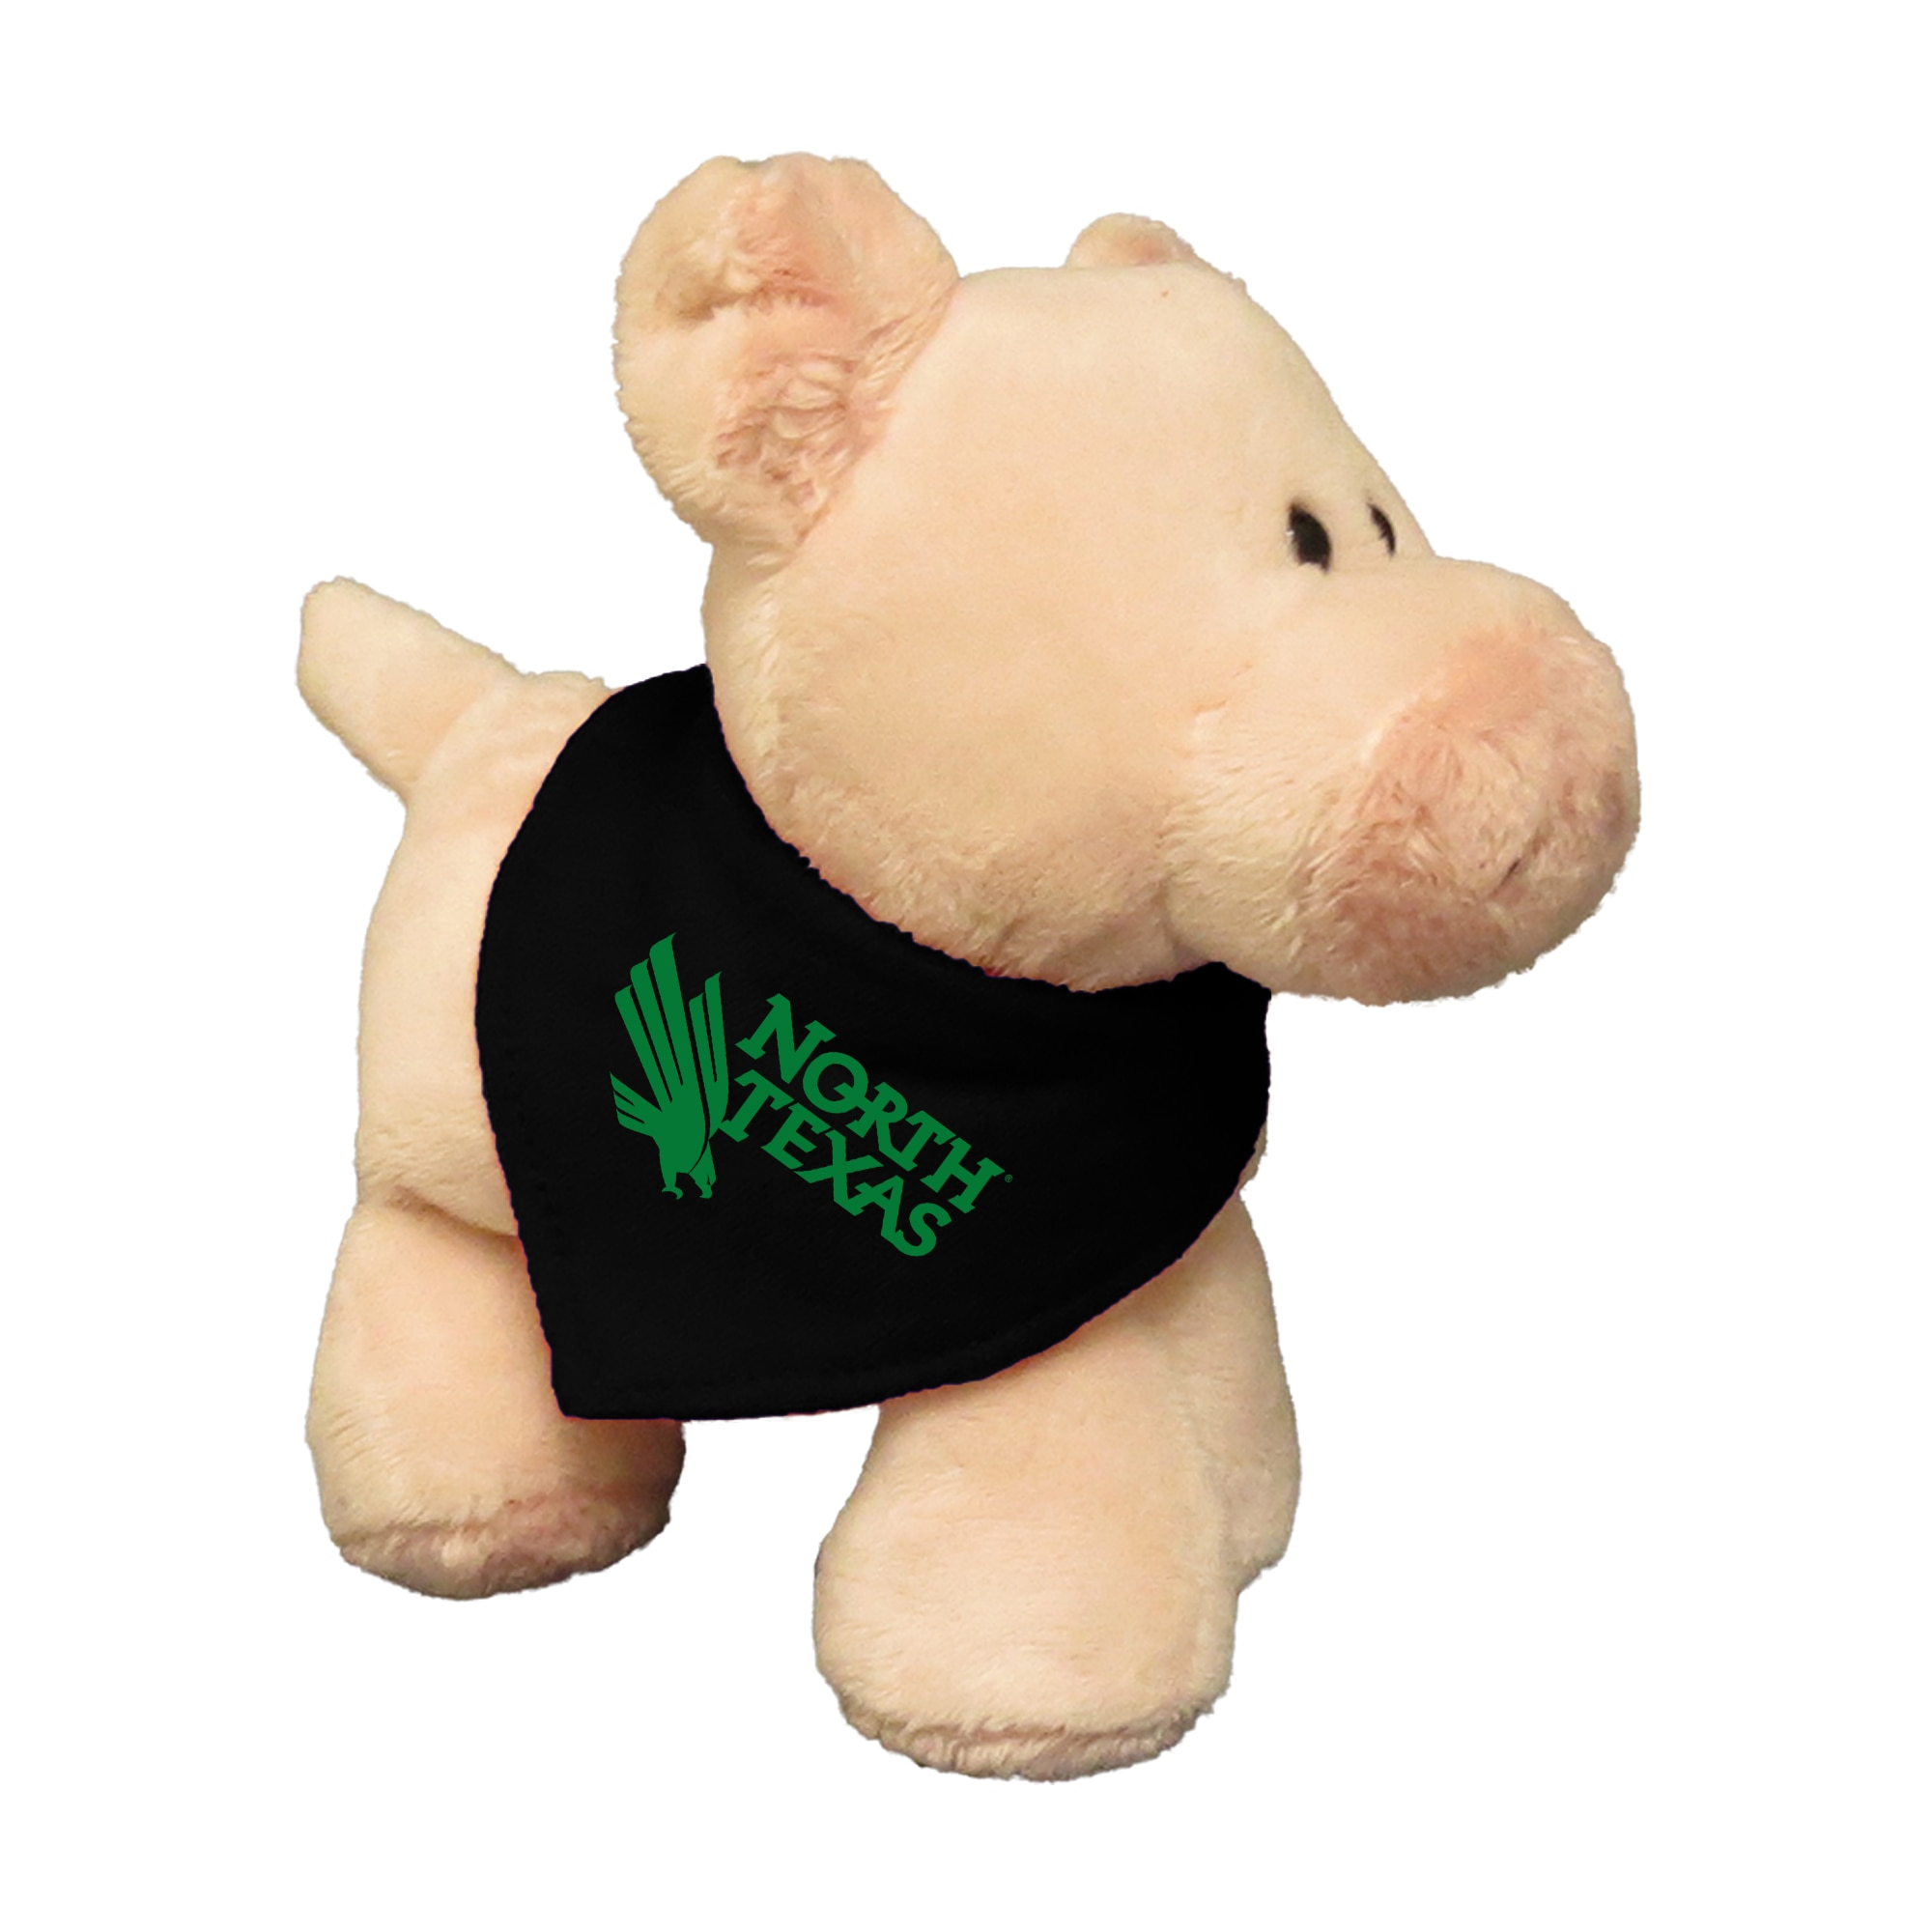 University of North Texas 6in Plush Pig Short Stack with Bandana